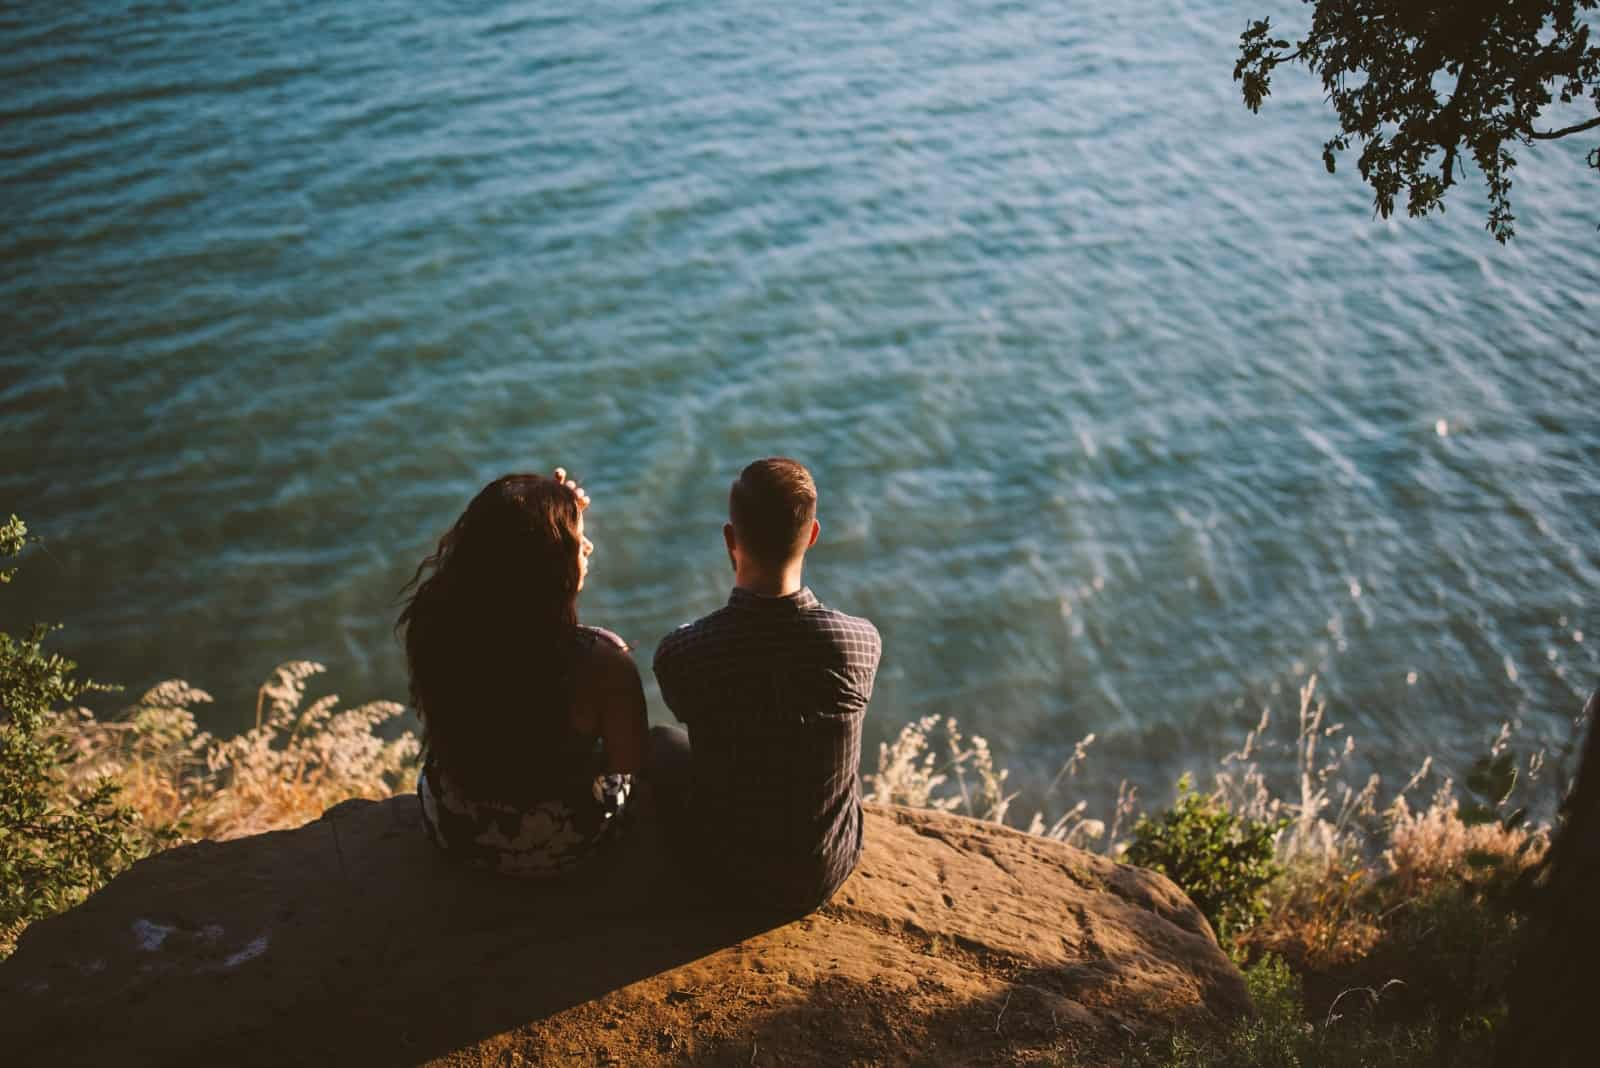 man and woman talking while sitting near water